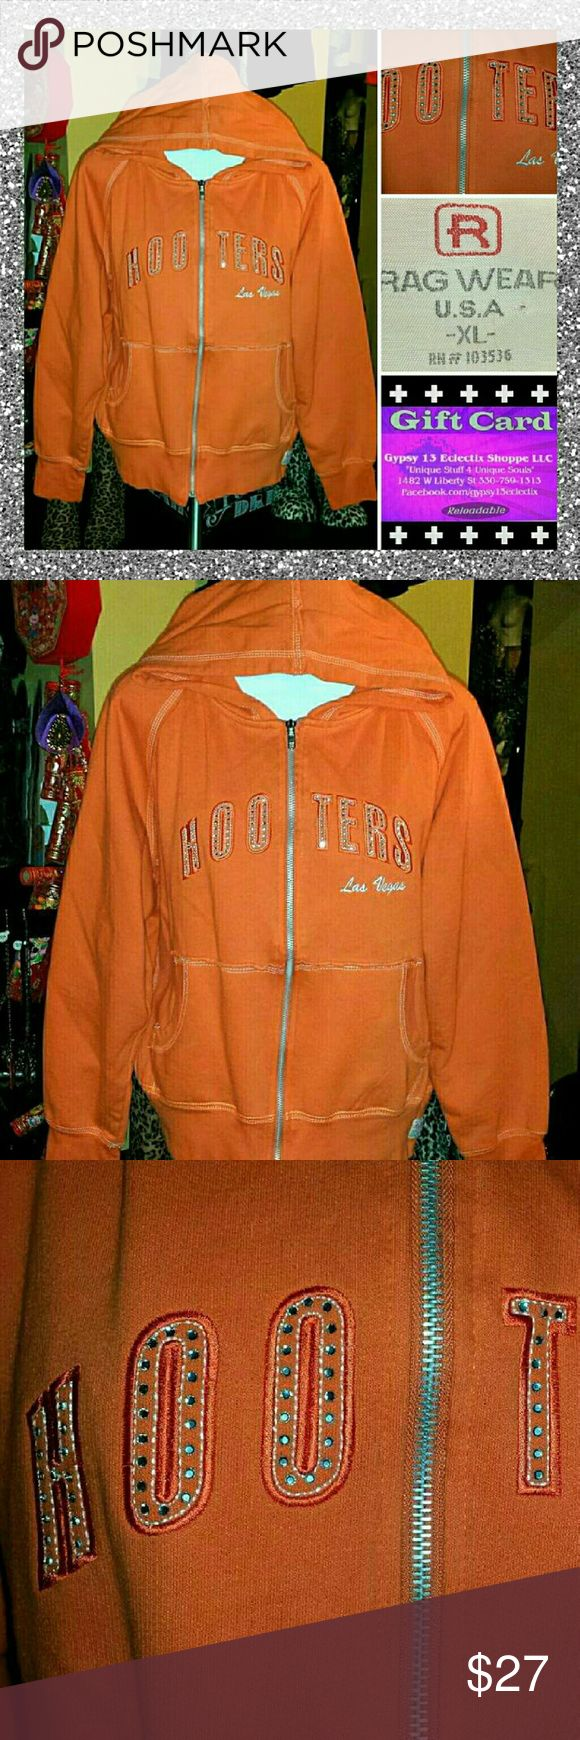 ?? HOOTERS VEGAS HARLEY ORANGE BLING HOODIE JACKET QUALITY & COOL blinged out RHINESTONE HOOTERS LAS VEGAS zip hoodie jacket...its size XL in JR/MISS(So It ll also fit a WOMENS SIZE-MEDIUM ) and its in EXCELLENT nearly new condition Tops Sweatshirts & Hoodies